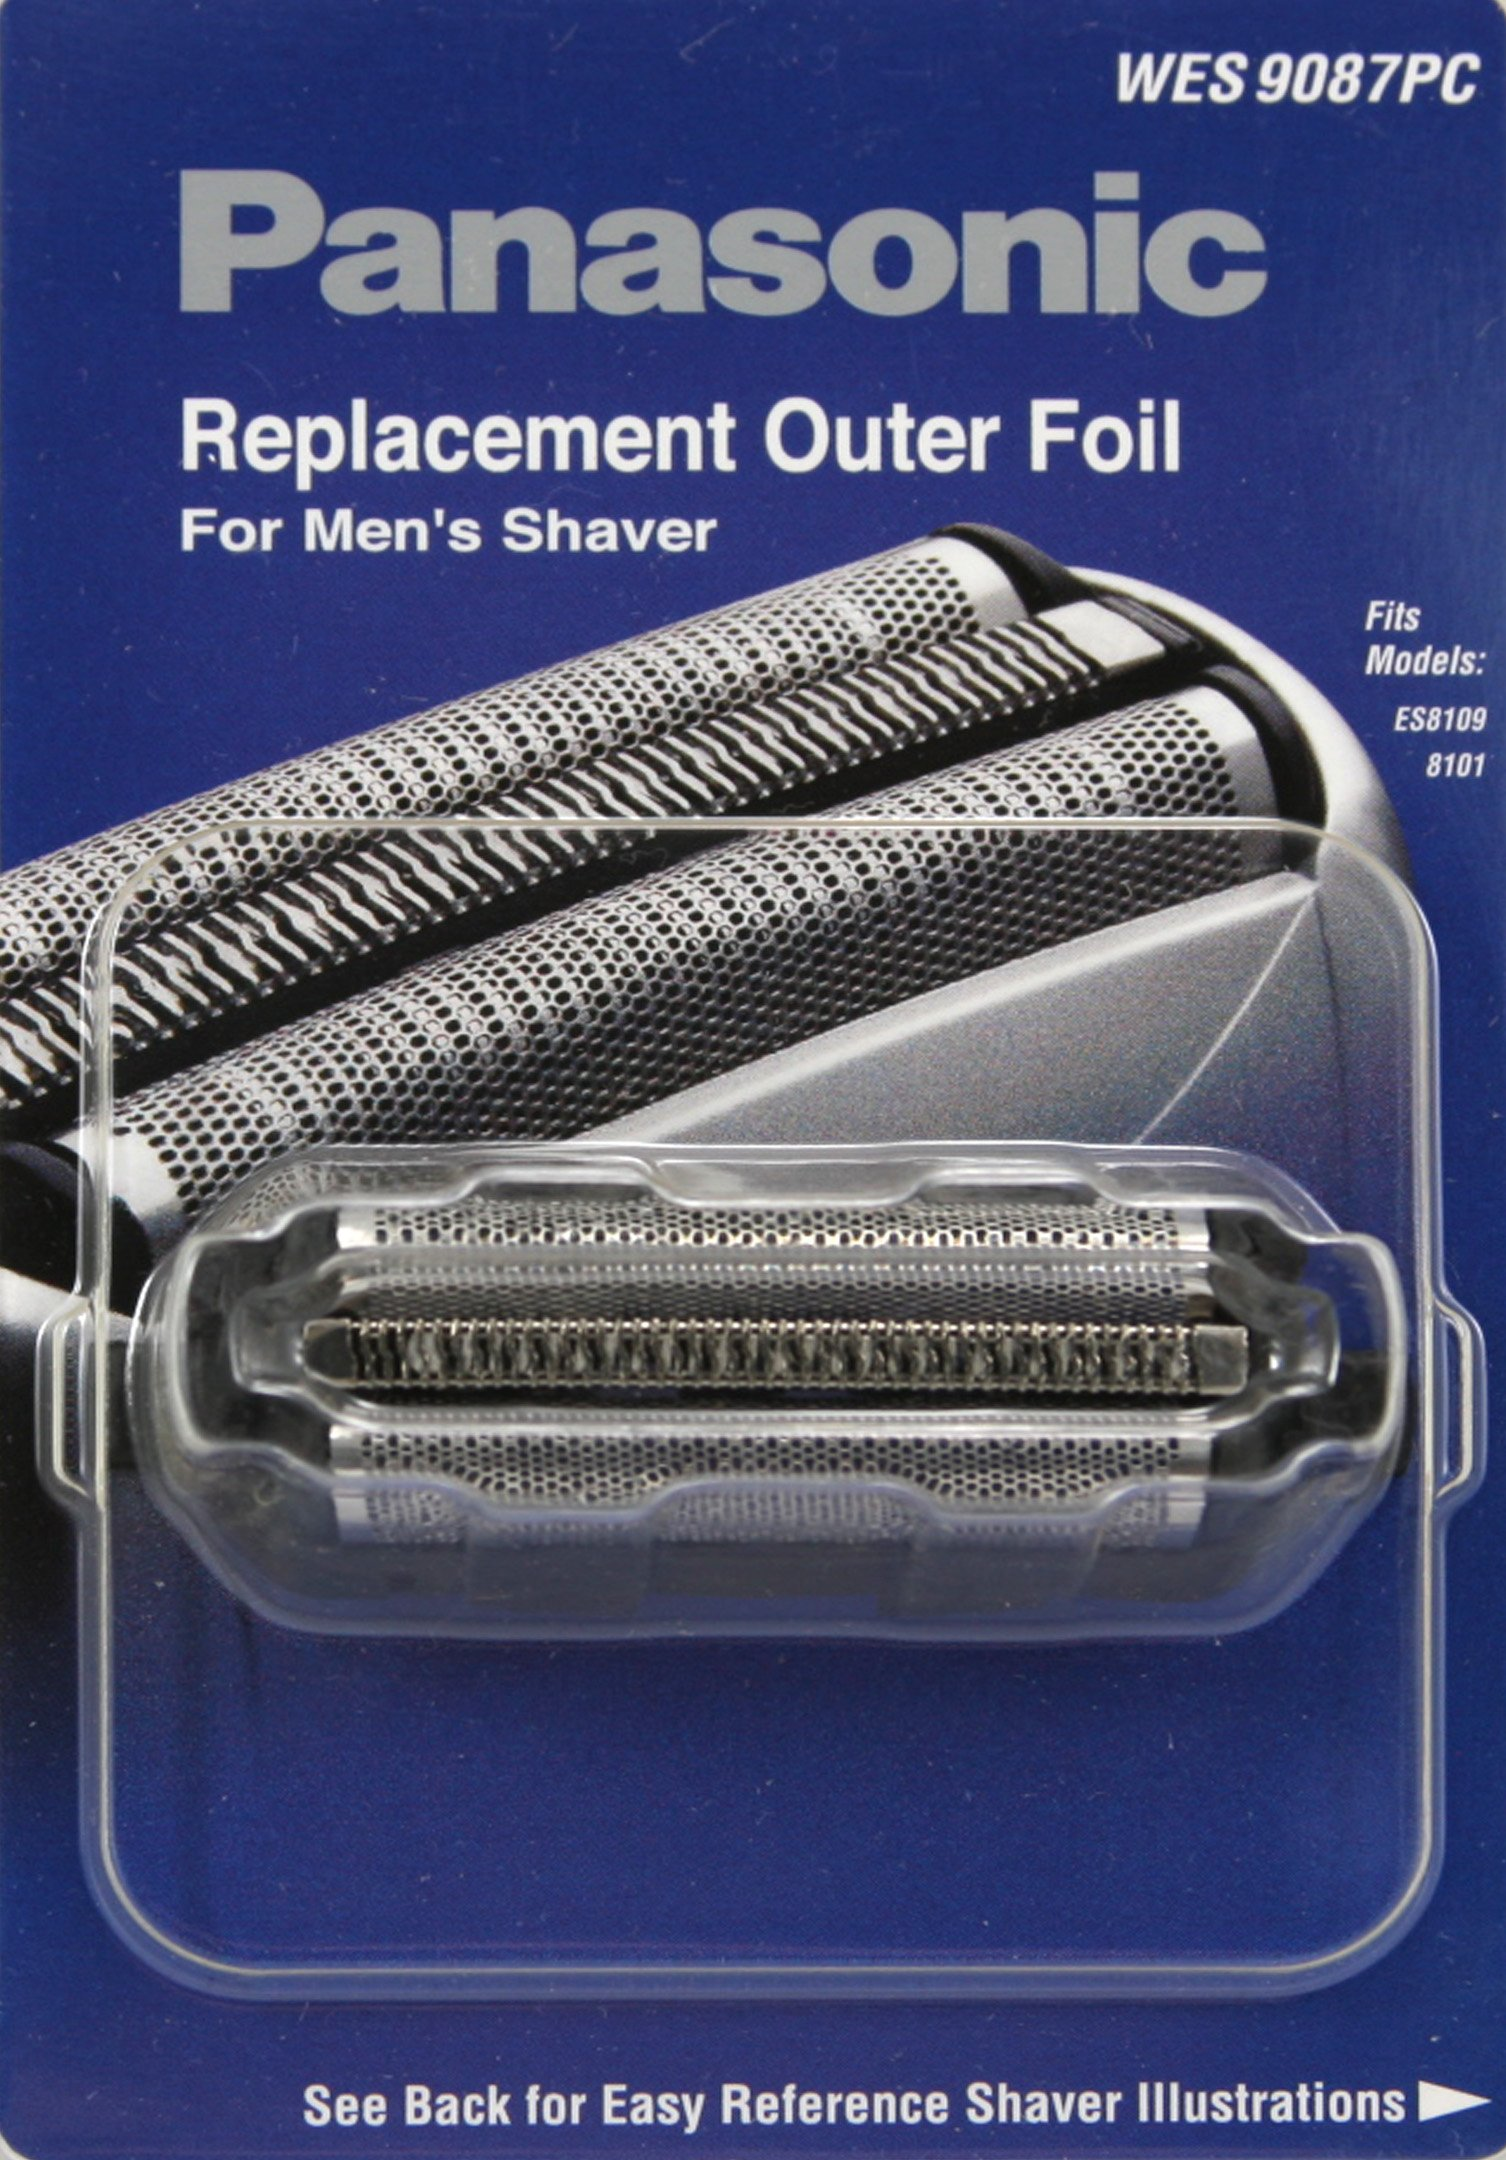 Panasonic WES9087PC Men's Electric Razor Replacement Outer Foil